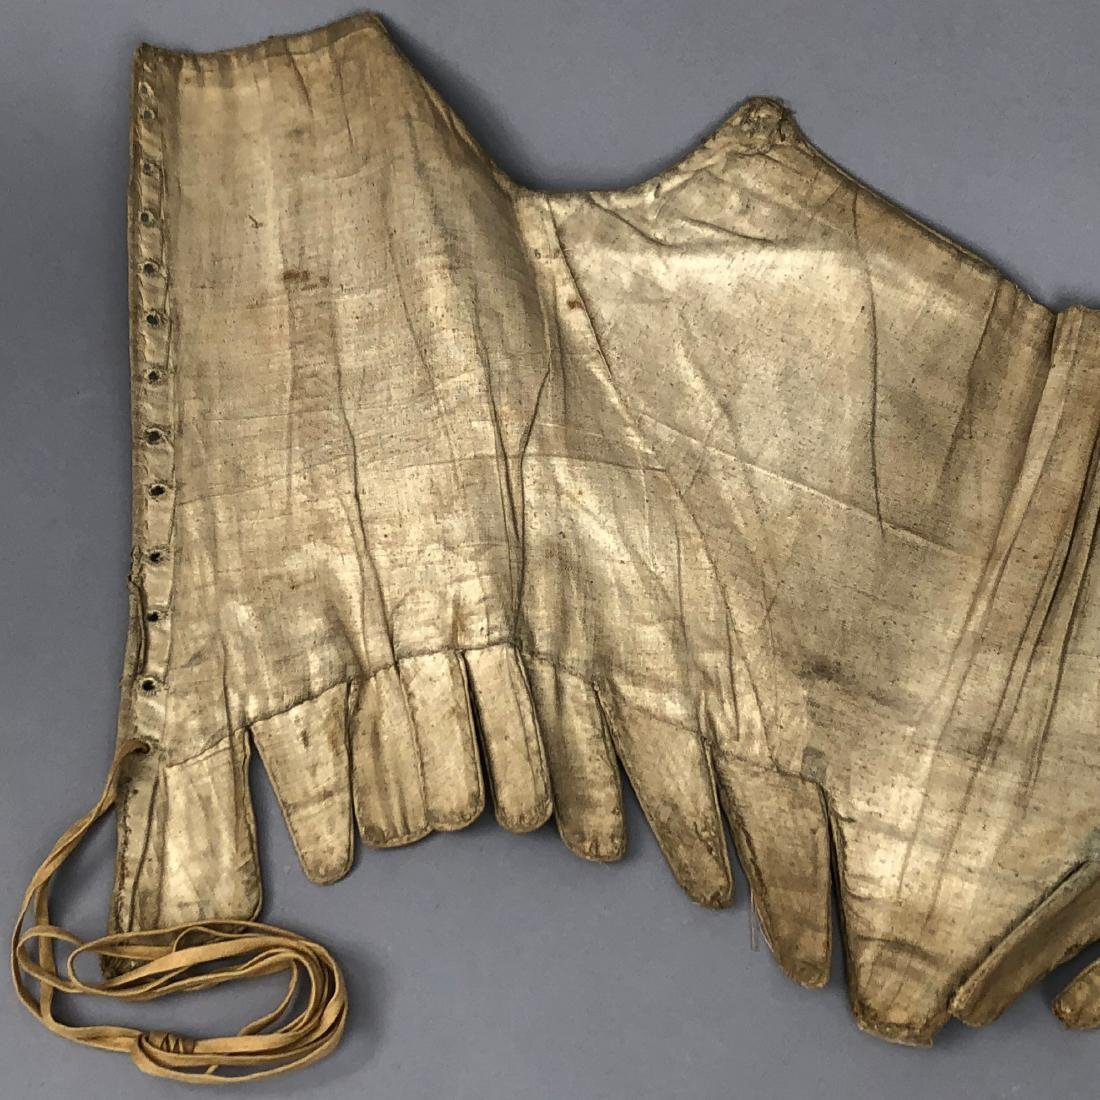 EARLY OFF-WHITE LINEN CORSET, 1740s - 7